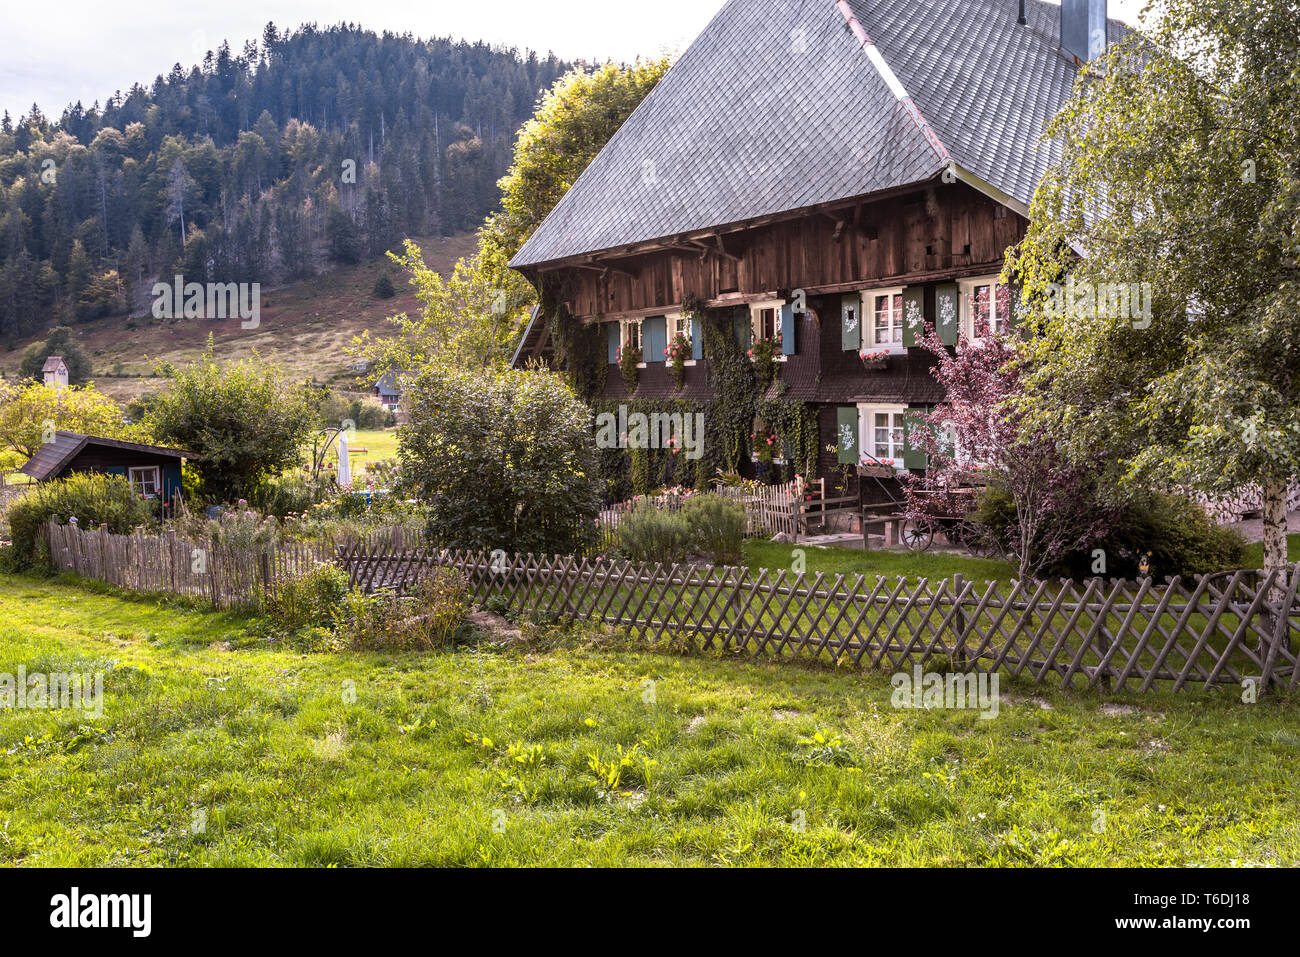 typical Black Forest house with hipped roof and wooded hills, village Menzenschwand, Germany, original architecture of the High Black Forest Stock Photo